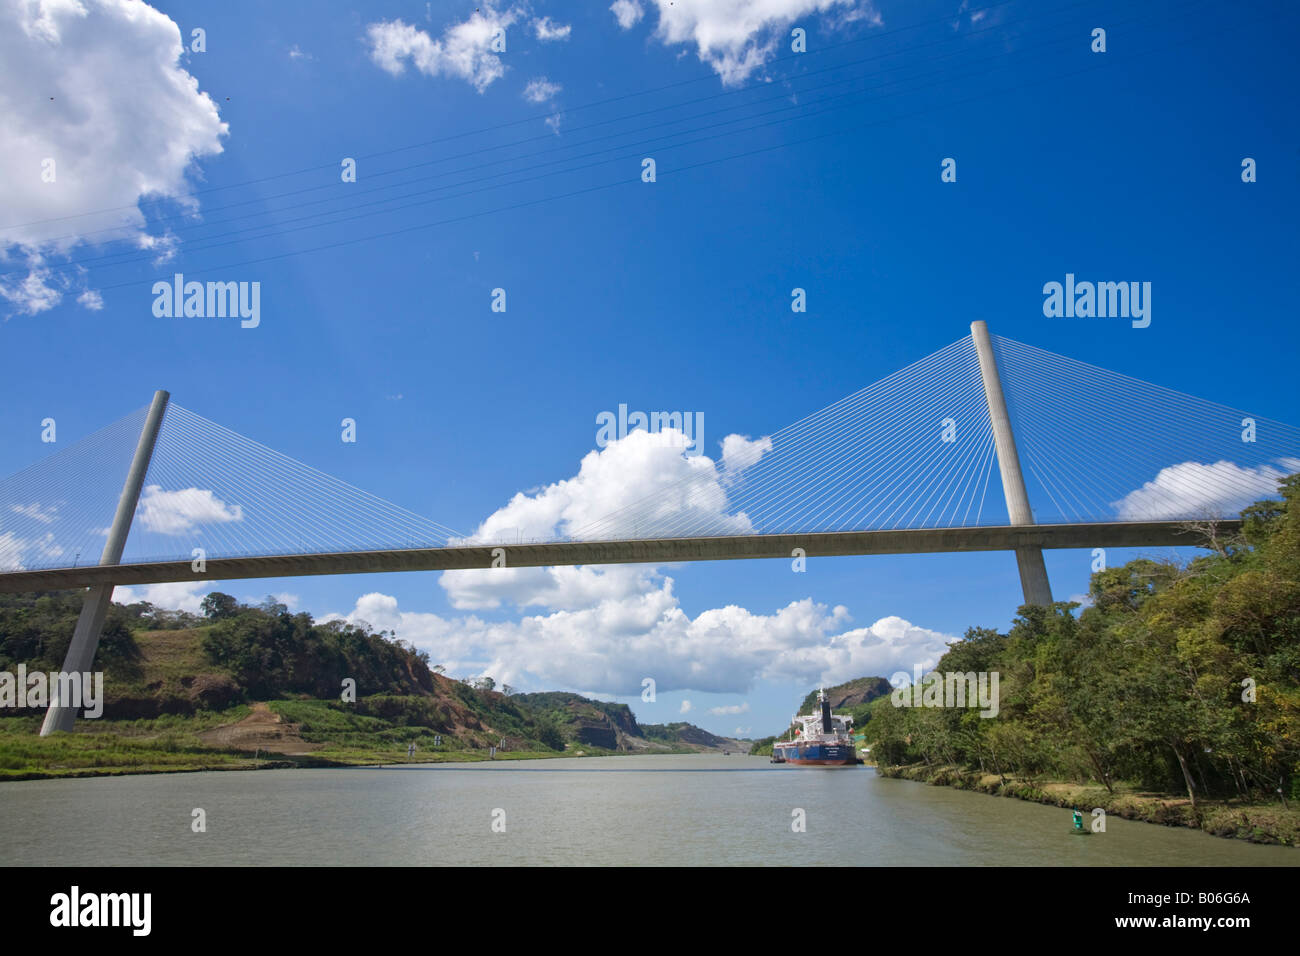 Panama, Centennal bridge spanning the  Panama Canal - Stock Image